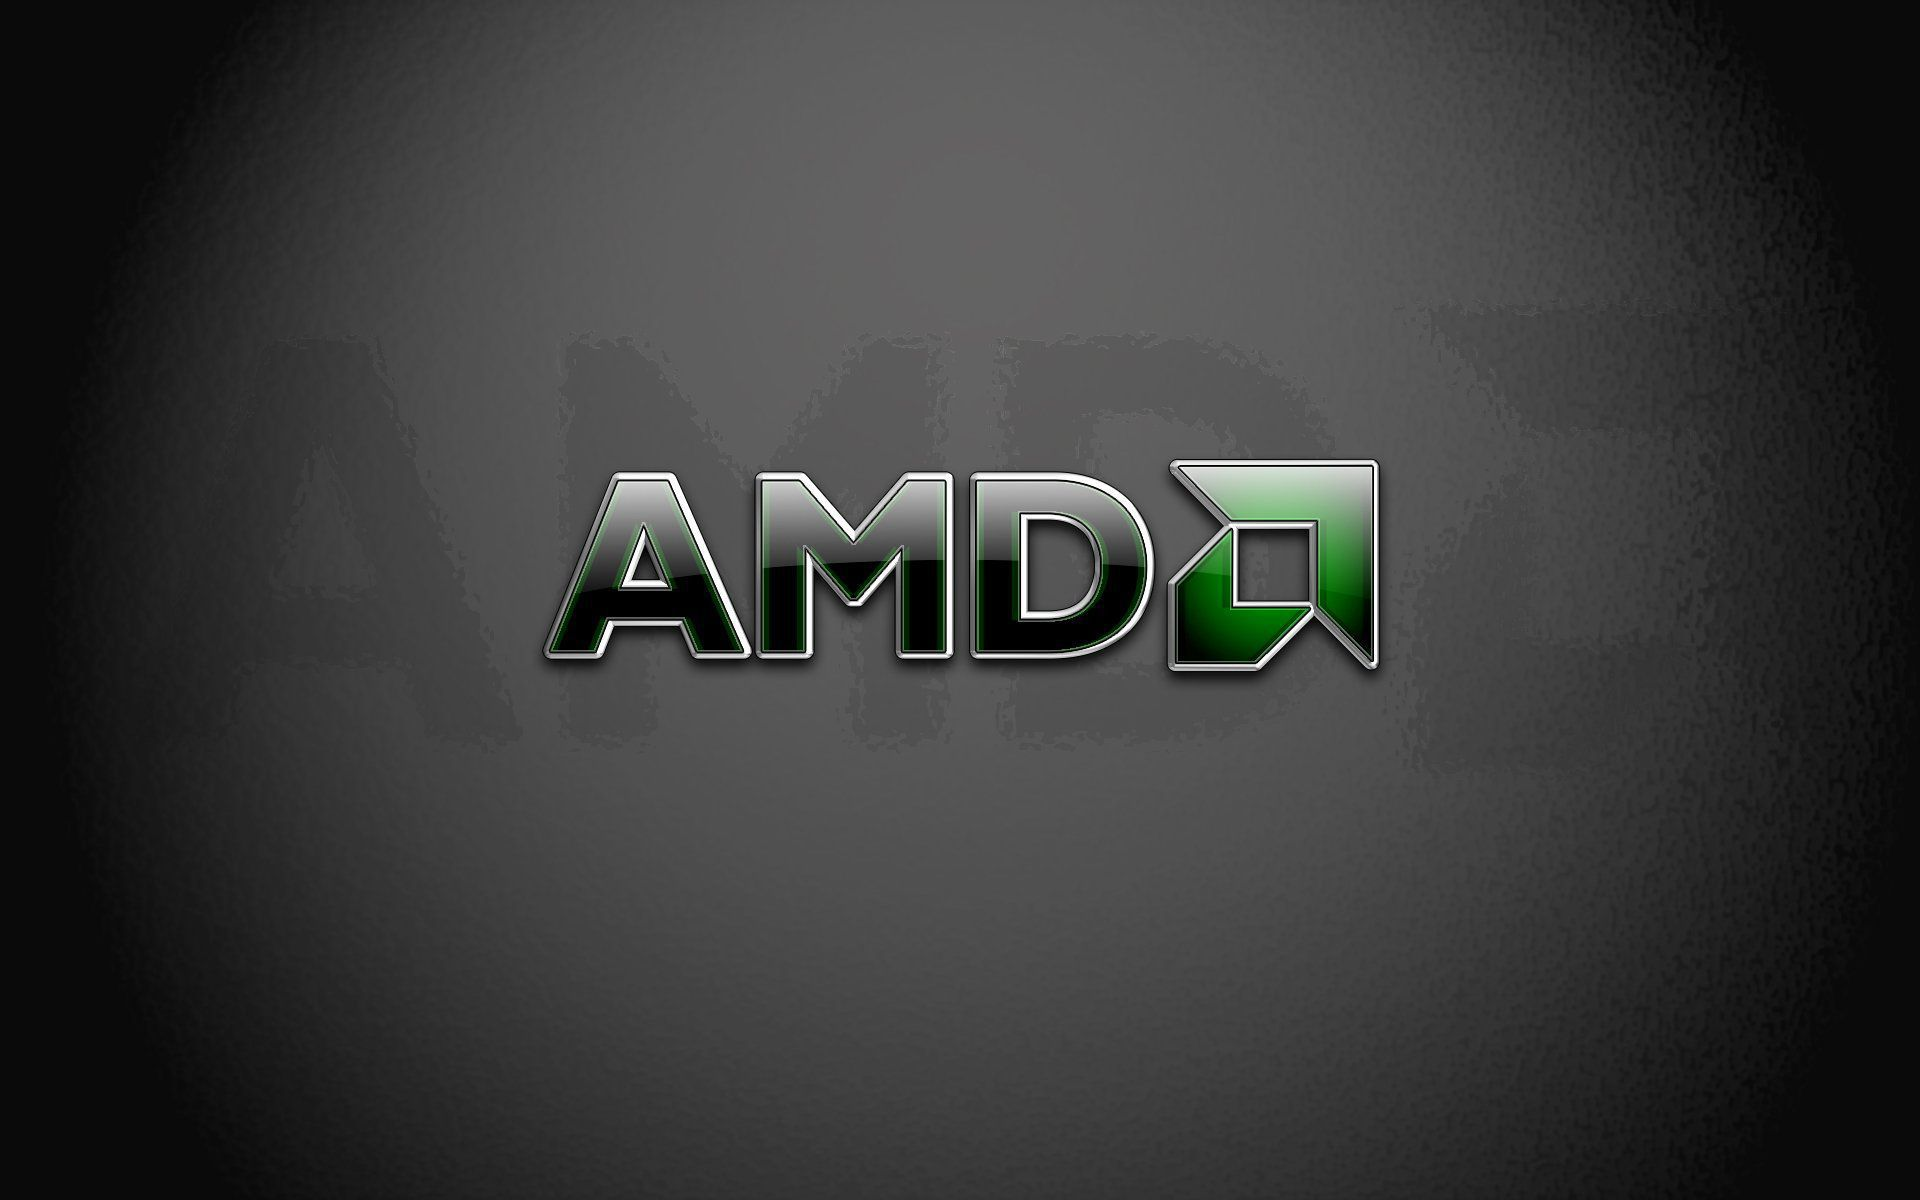 Amd Wallpapers Backgrounds